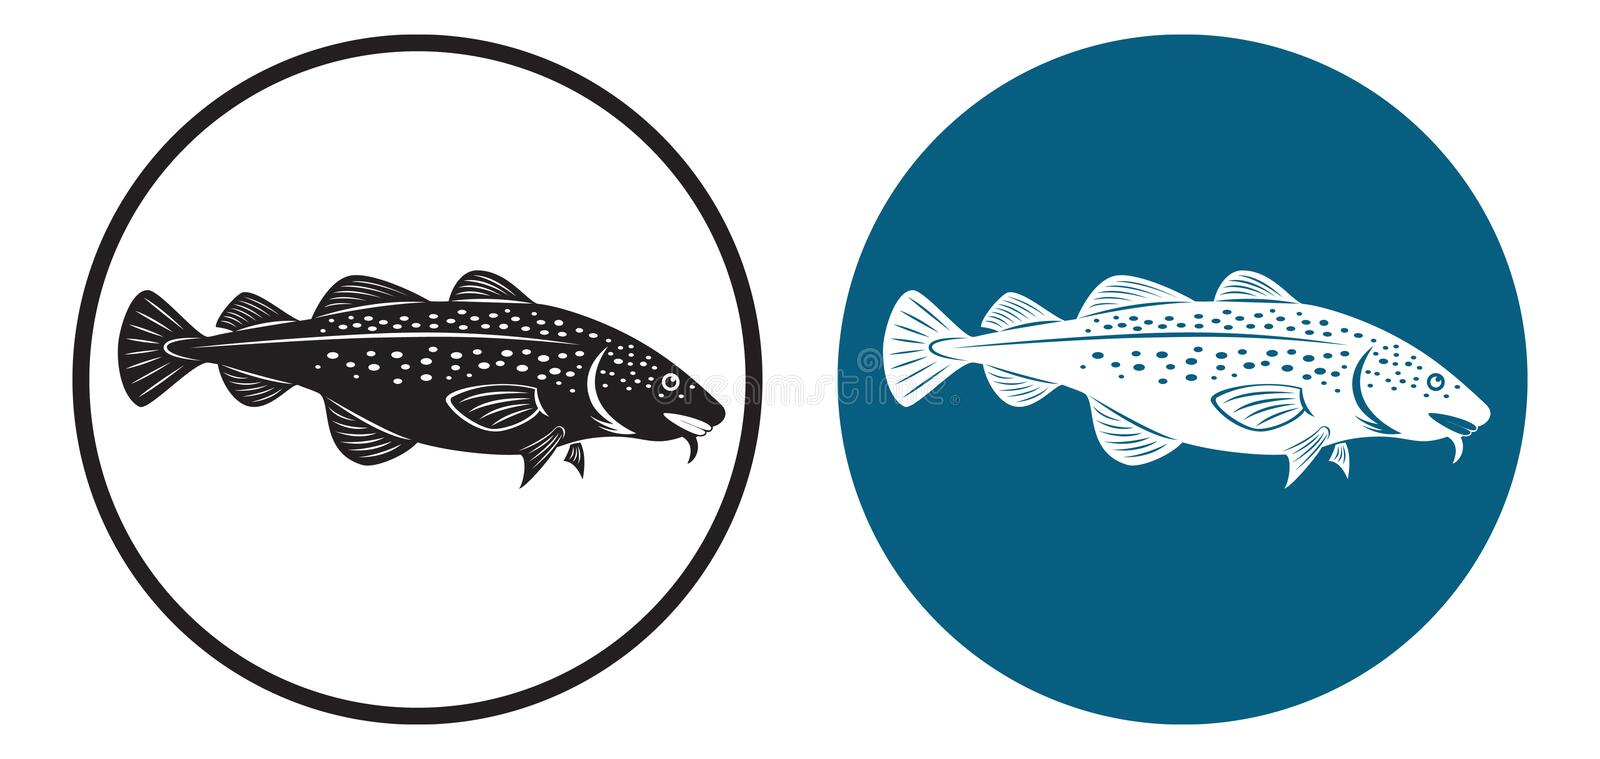 Cod. The figure shows a cod fish royalty free illustration